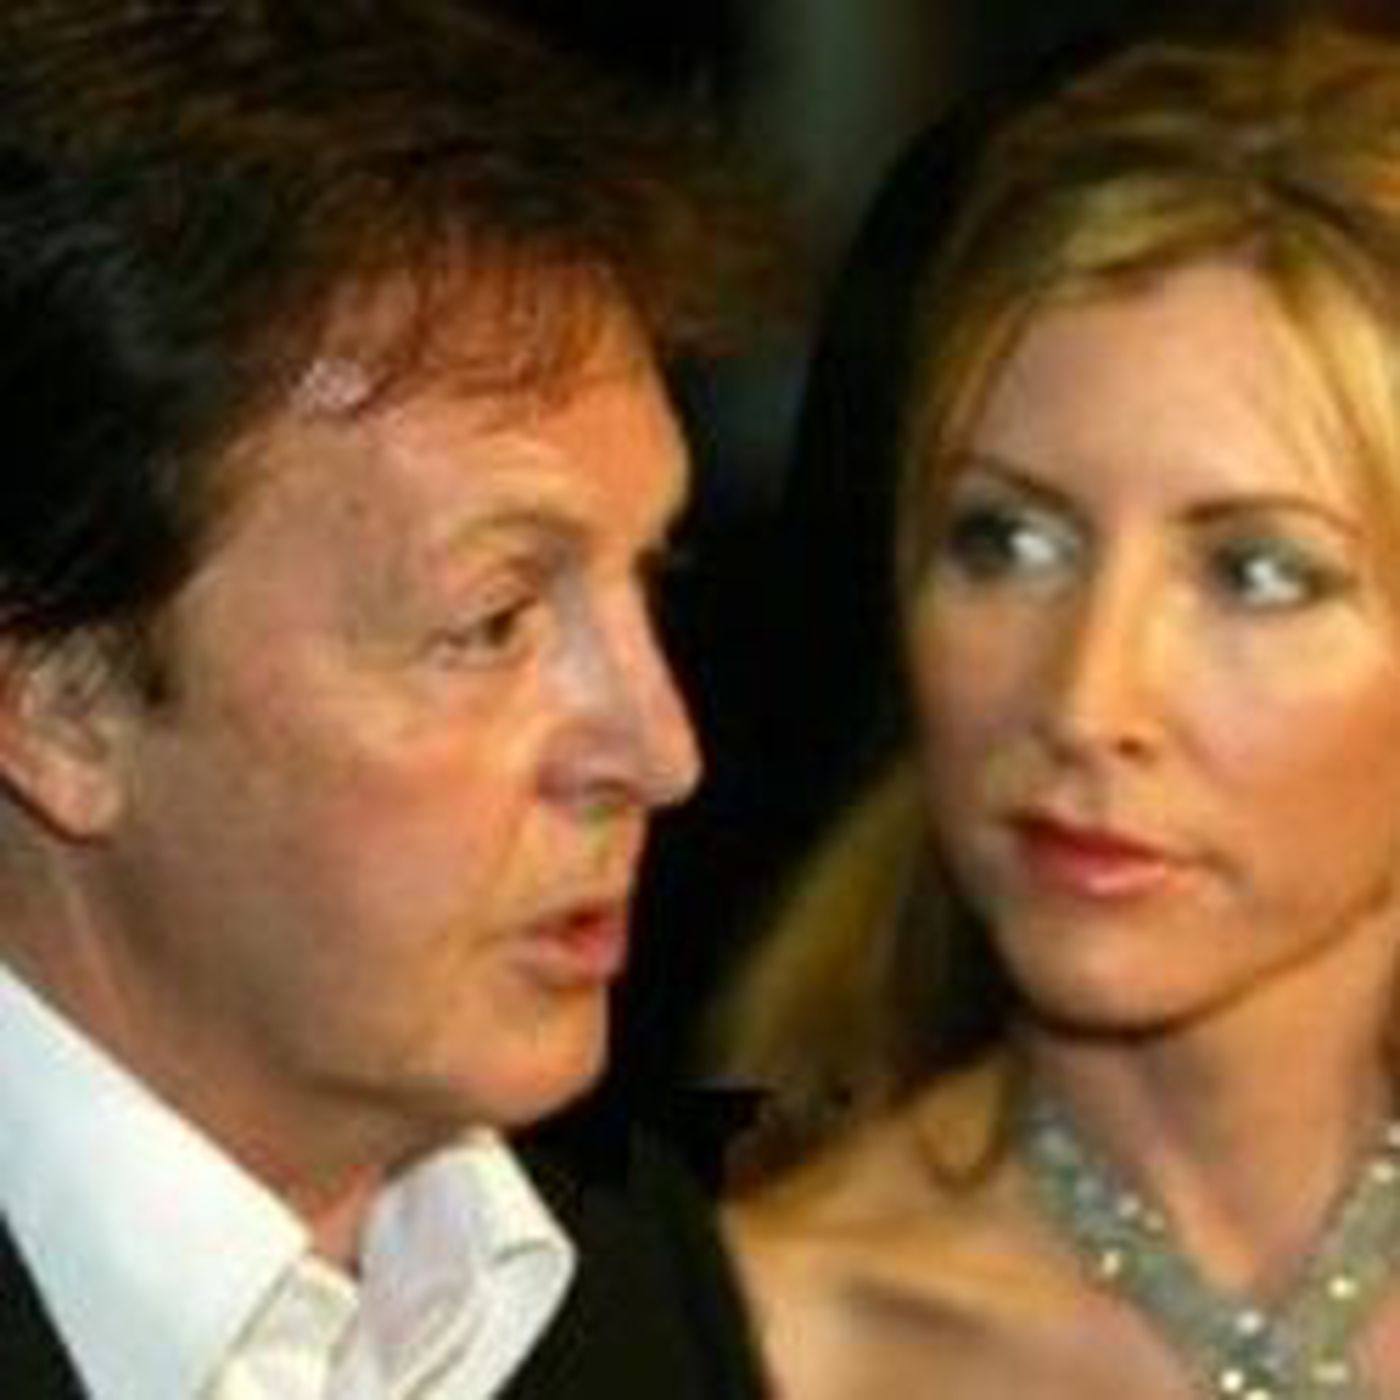 Judge Says Heather Mills 250M Divorce Claim From Paul McCartney Was Exorbitant